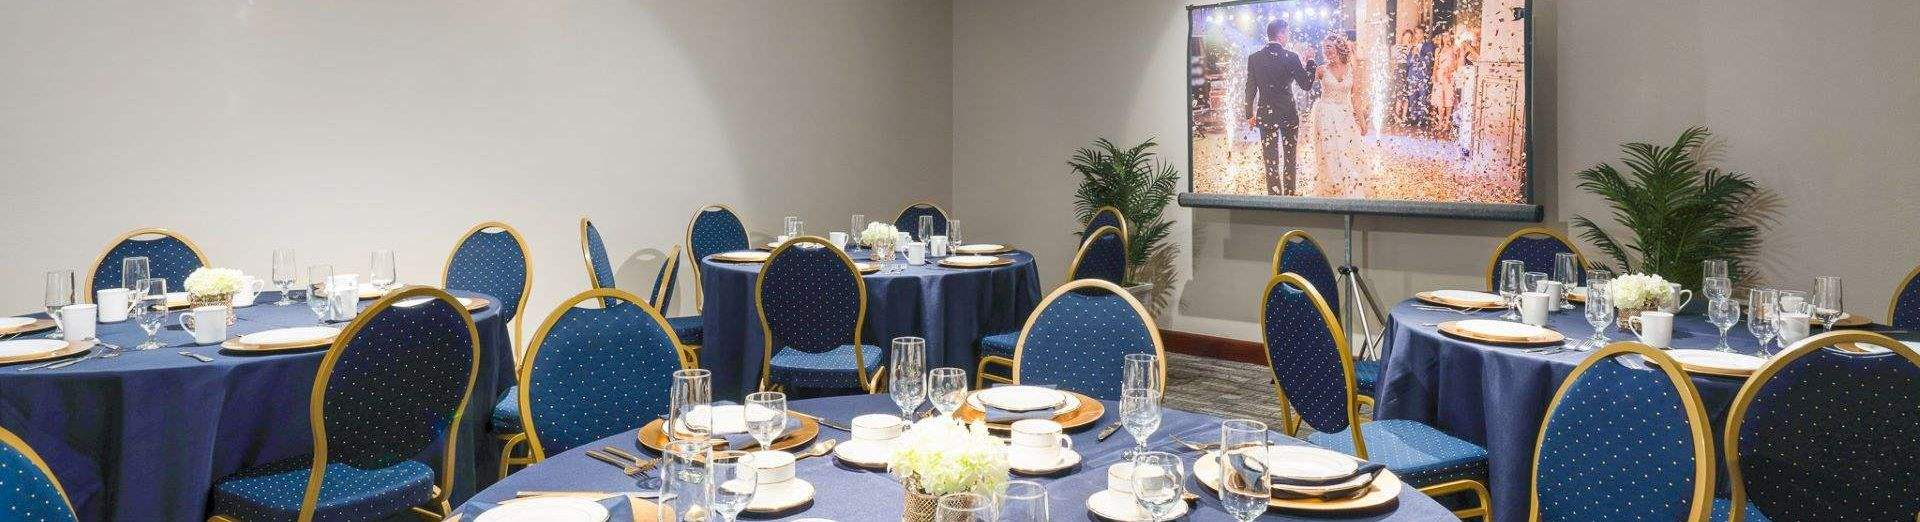 Chase Suite Hotel Brea, California - Meetings & Events